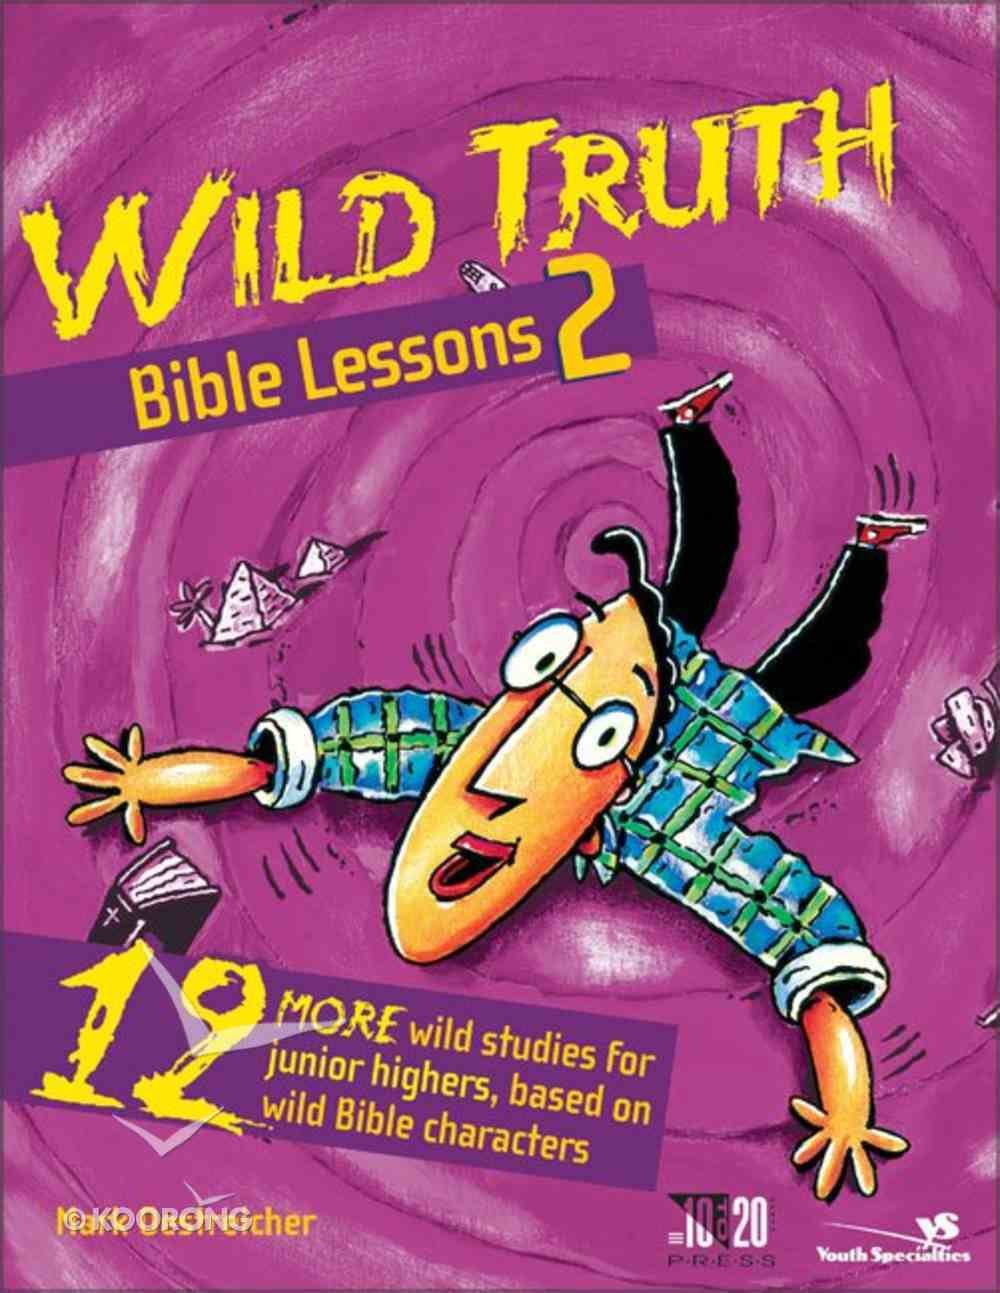 Wild Truth Bible Lessons 2 Paperback